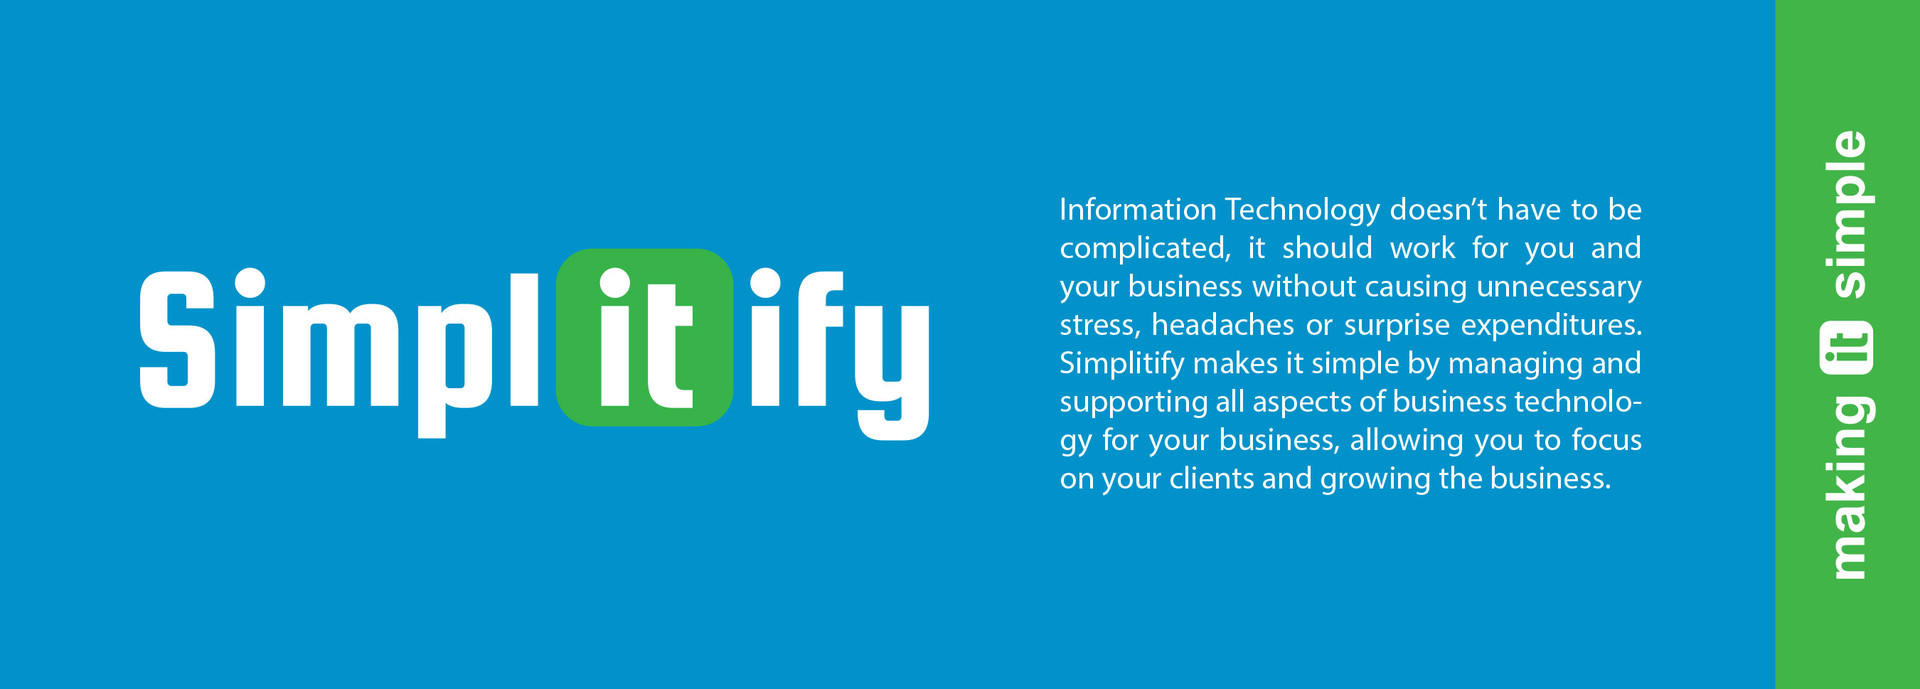 logo for colored background, tagline, and about simplitify